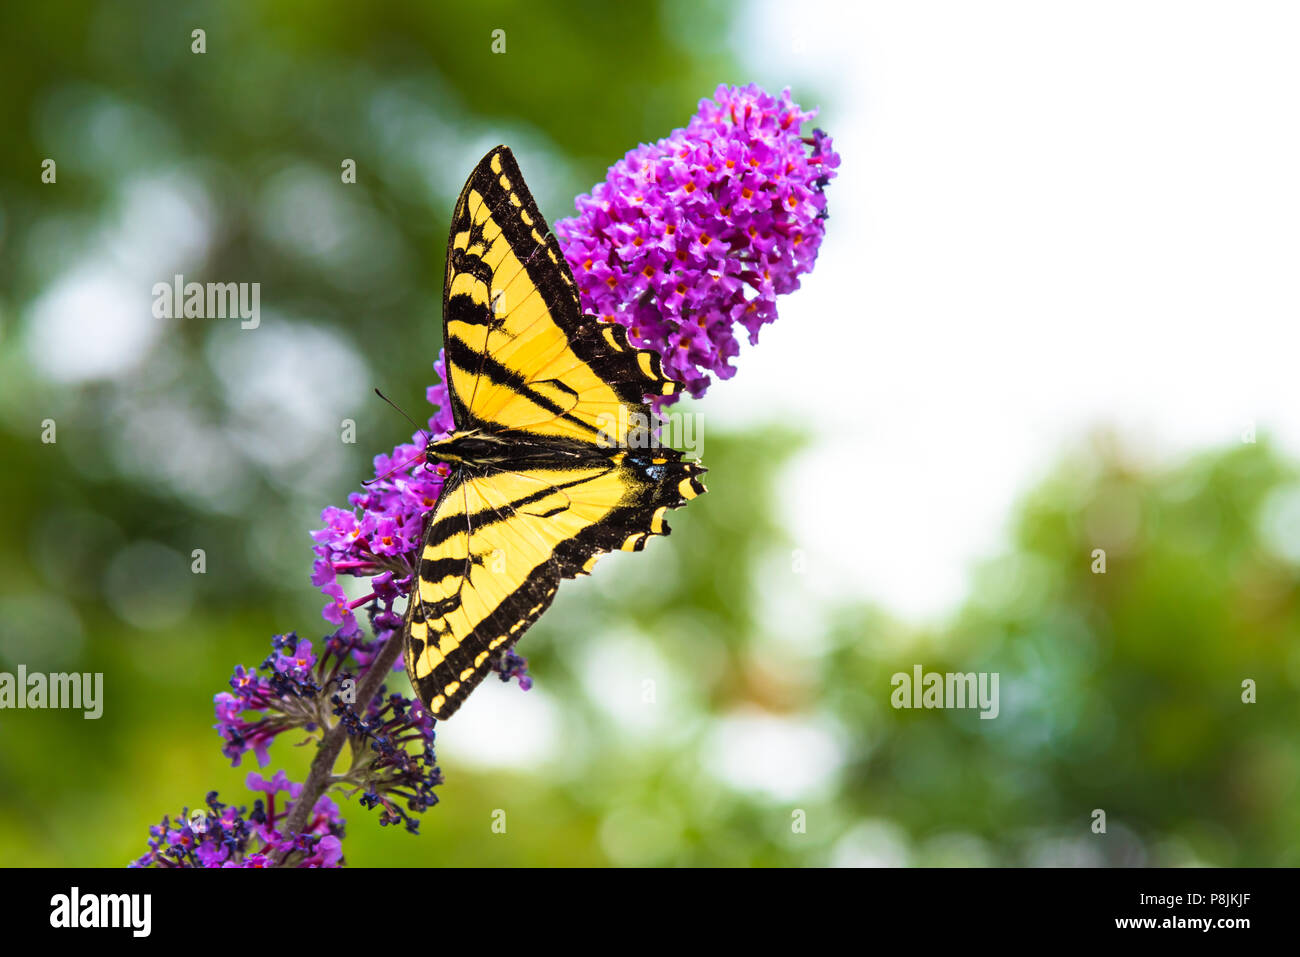 Close Up Of Yellow And Black Swallowtail Butterfly Perched On Pink